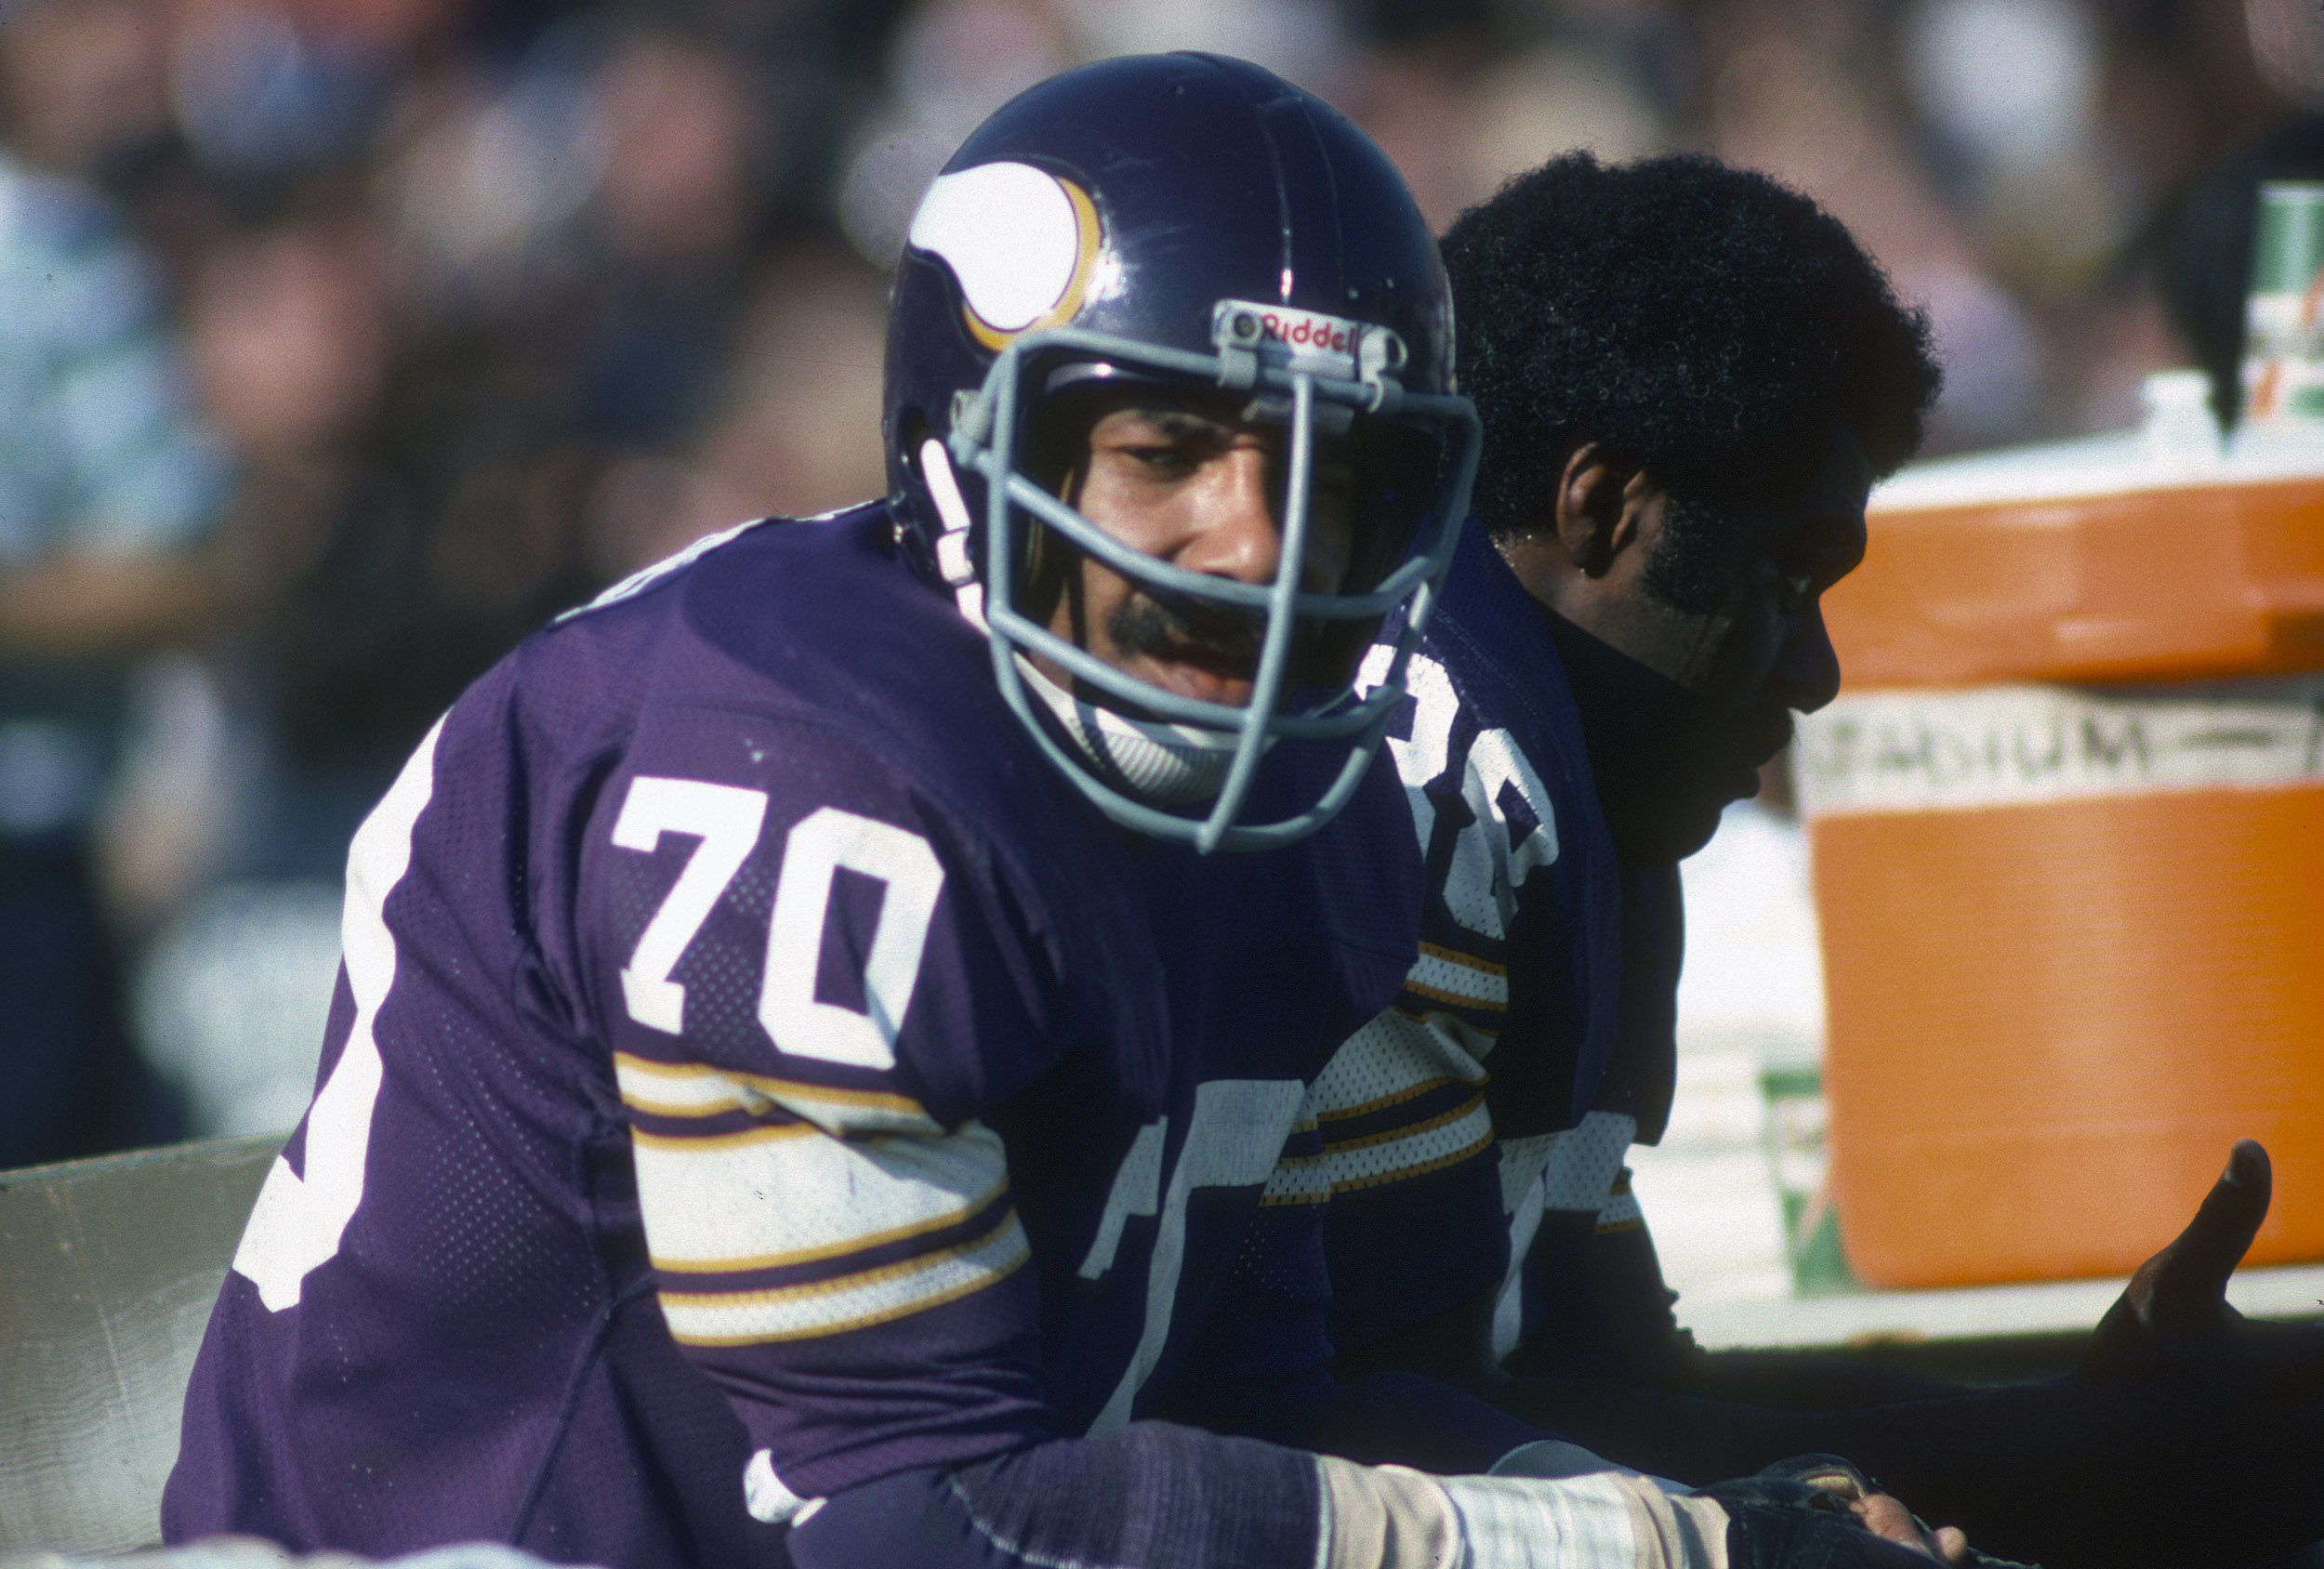 Minnesota Vikings defensive end Jim Marshall survived in a blizzard by literally burning money.